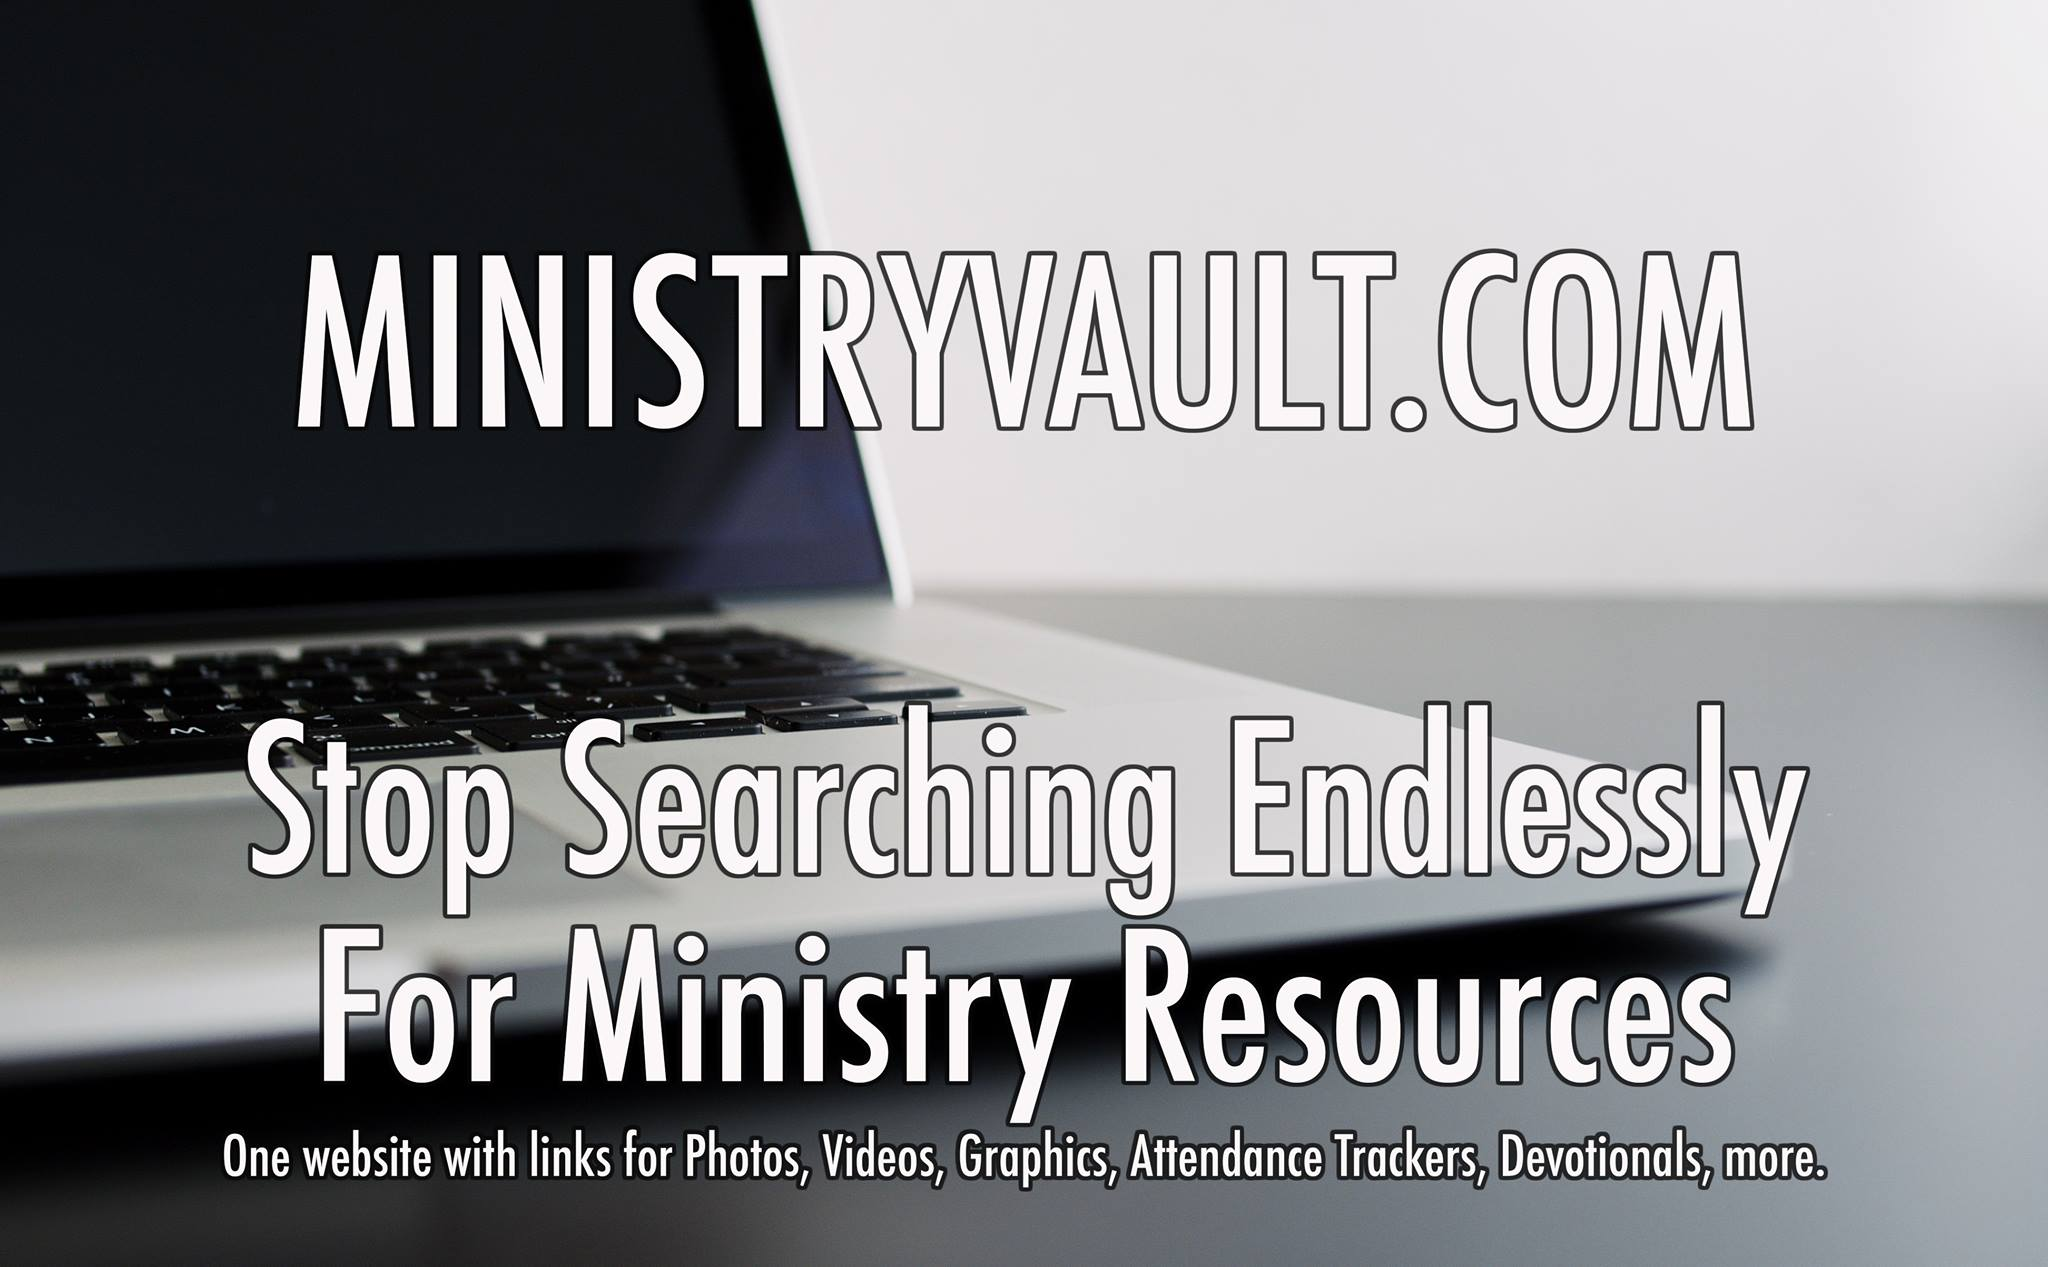 Click for More Ministry Resources